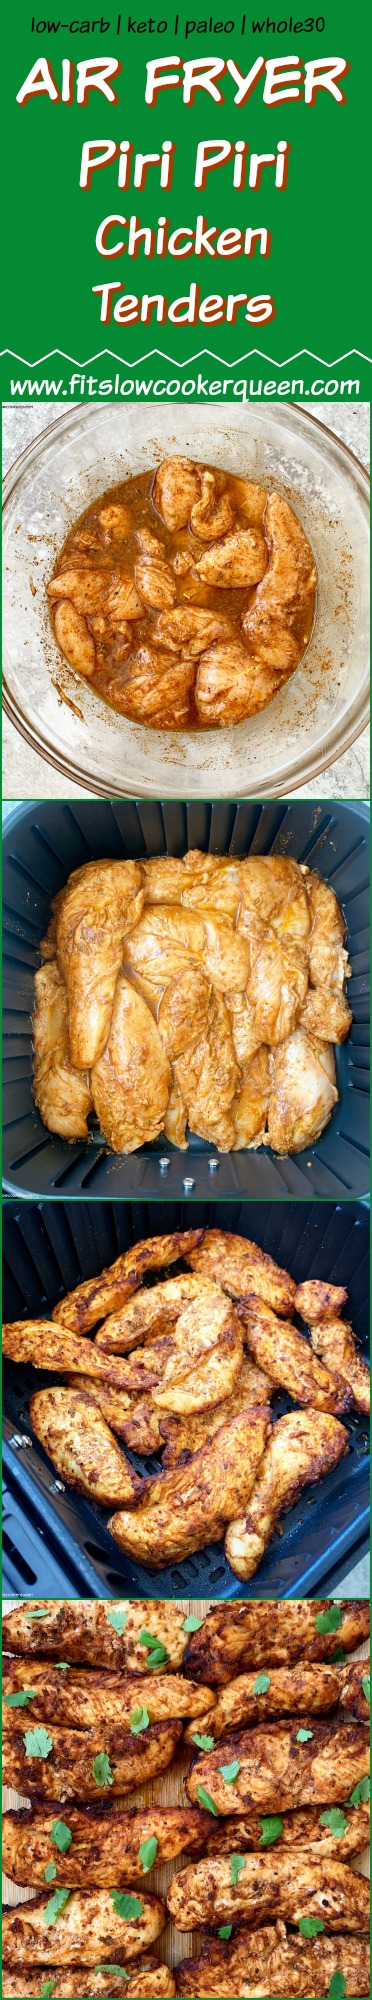 another Pinterest pin for Air Fryer Piri Piri Chicken Tenders (Low-Carb, Paleo, Whole30)